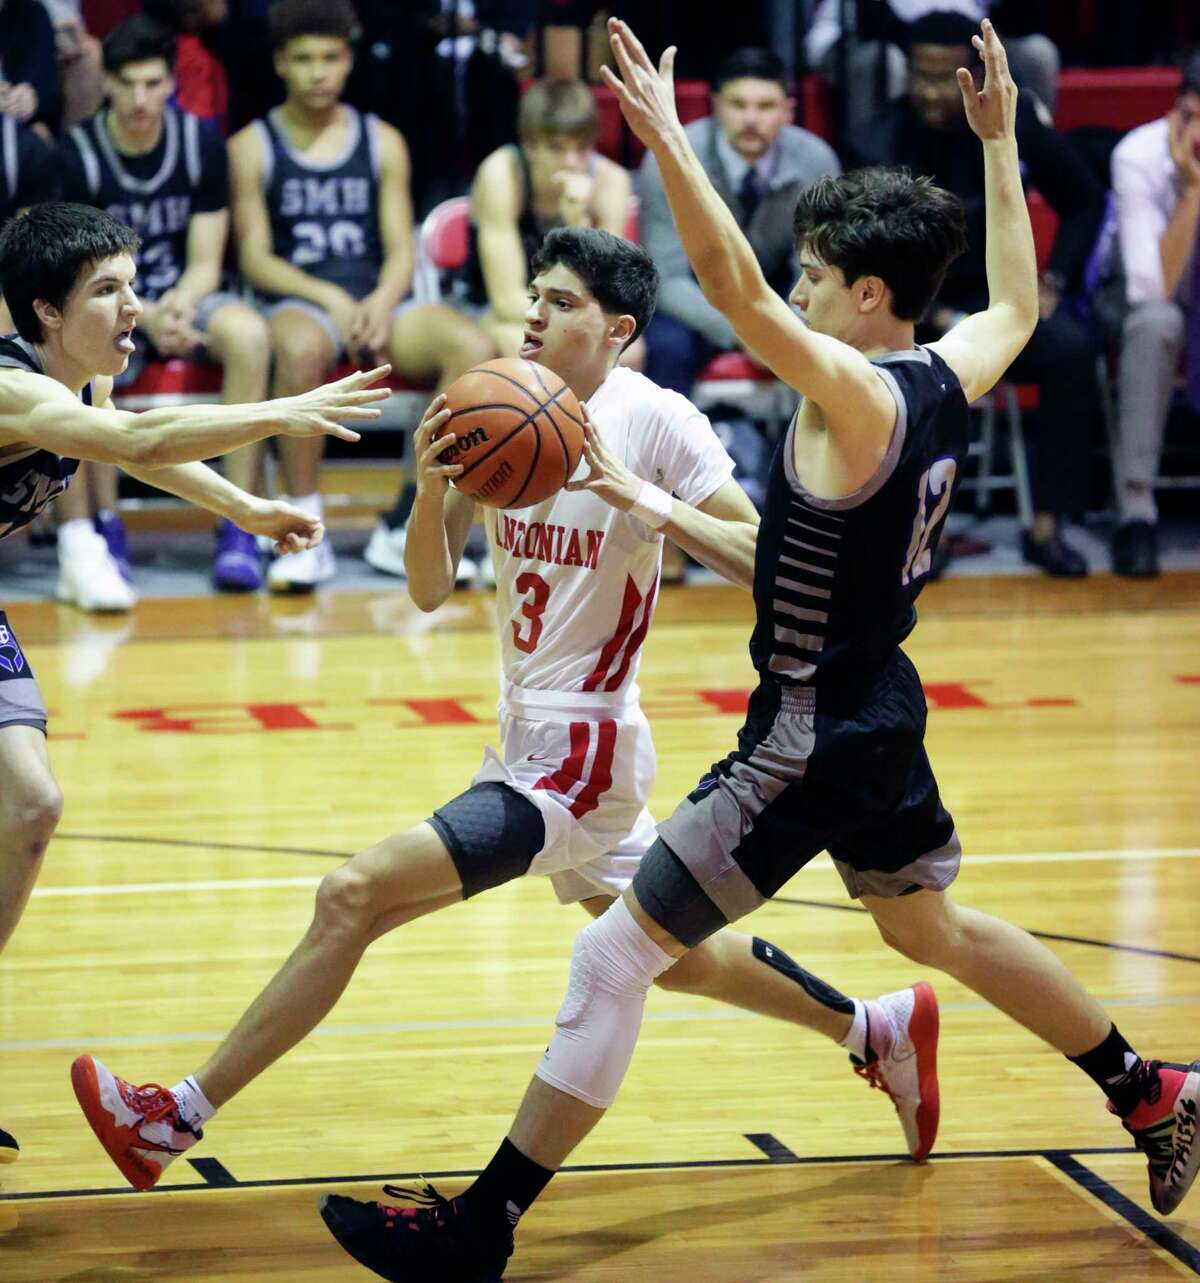 Gavin Ramos runs the floor under Avery Eugster to the hoop for the Apaches as Antonian hosts St. Mary's Hall in boys basketball at Antonian High School gym on Jan. 31, 2020.